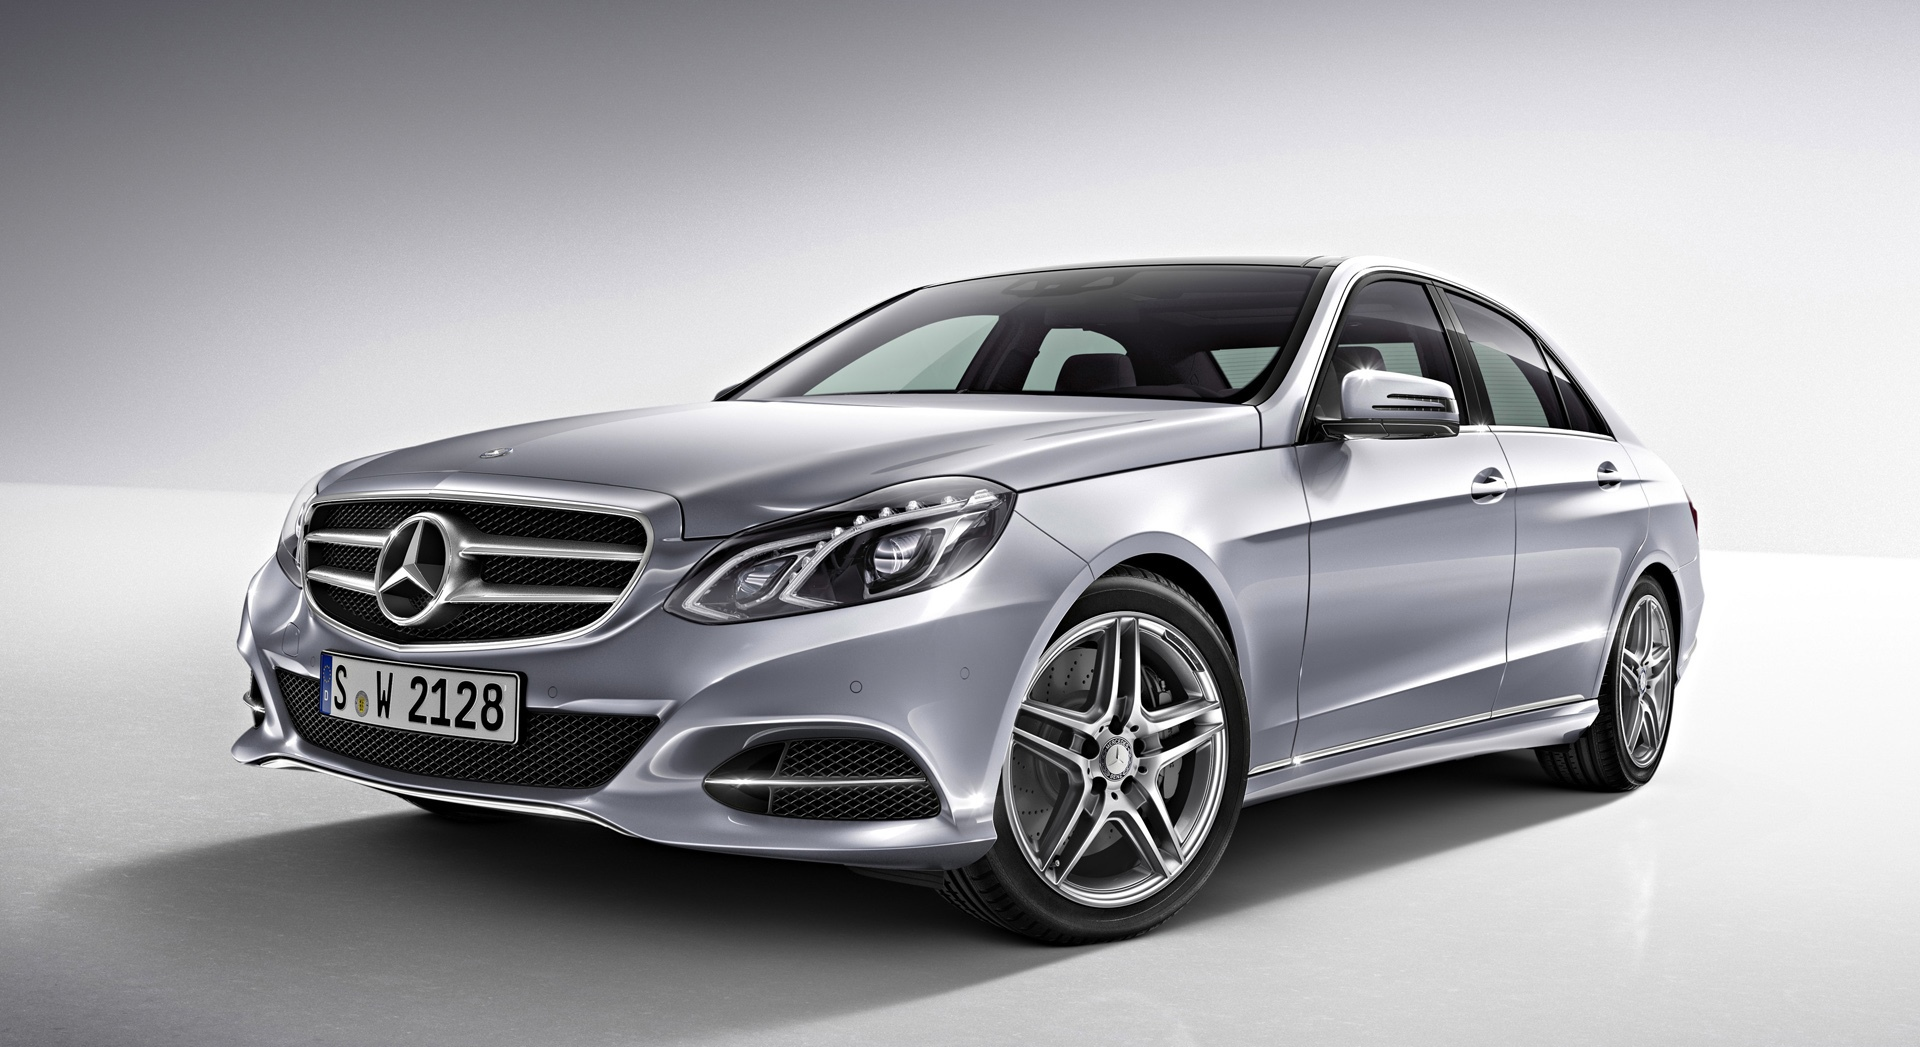 Mercedes Benz E Class 2016 Exterior Front Side View - Facelift